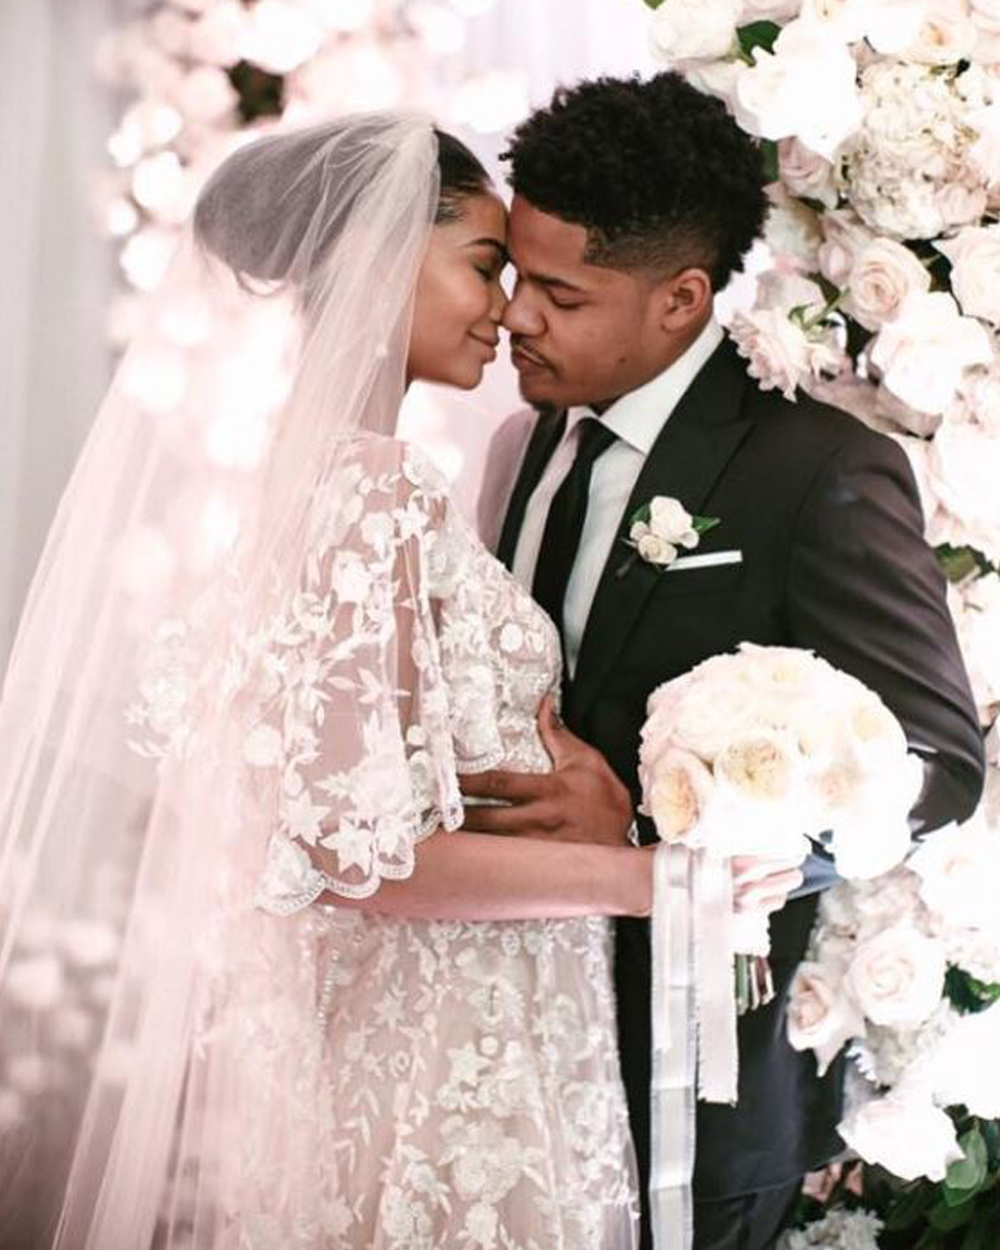 Chanel Iman Wedding Dress Zuhir Murad